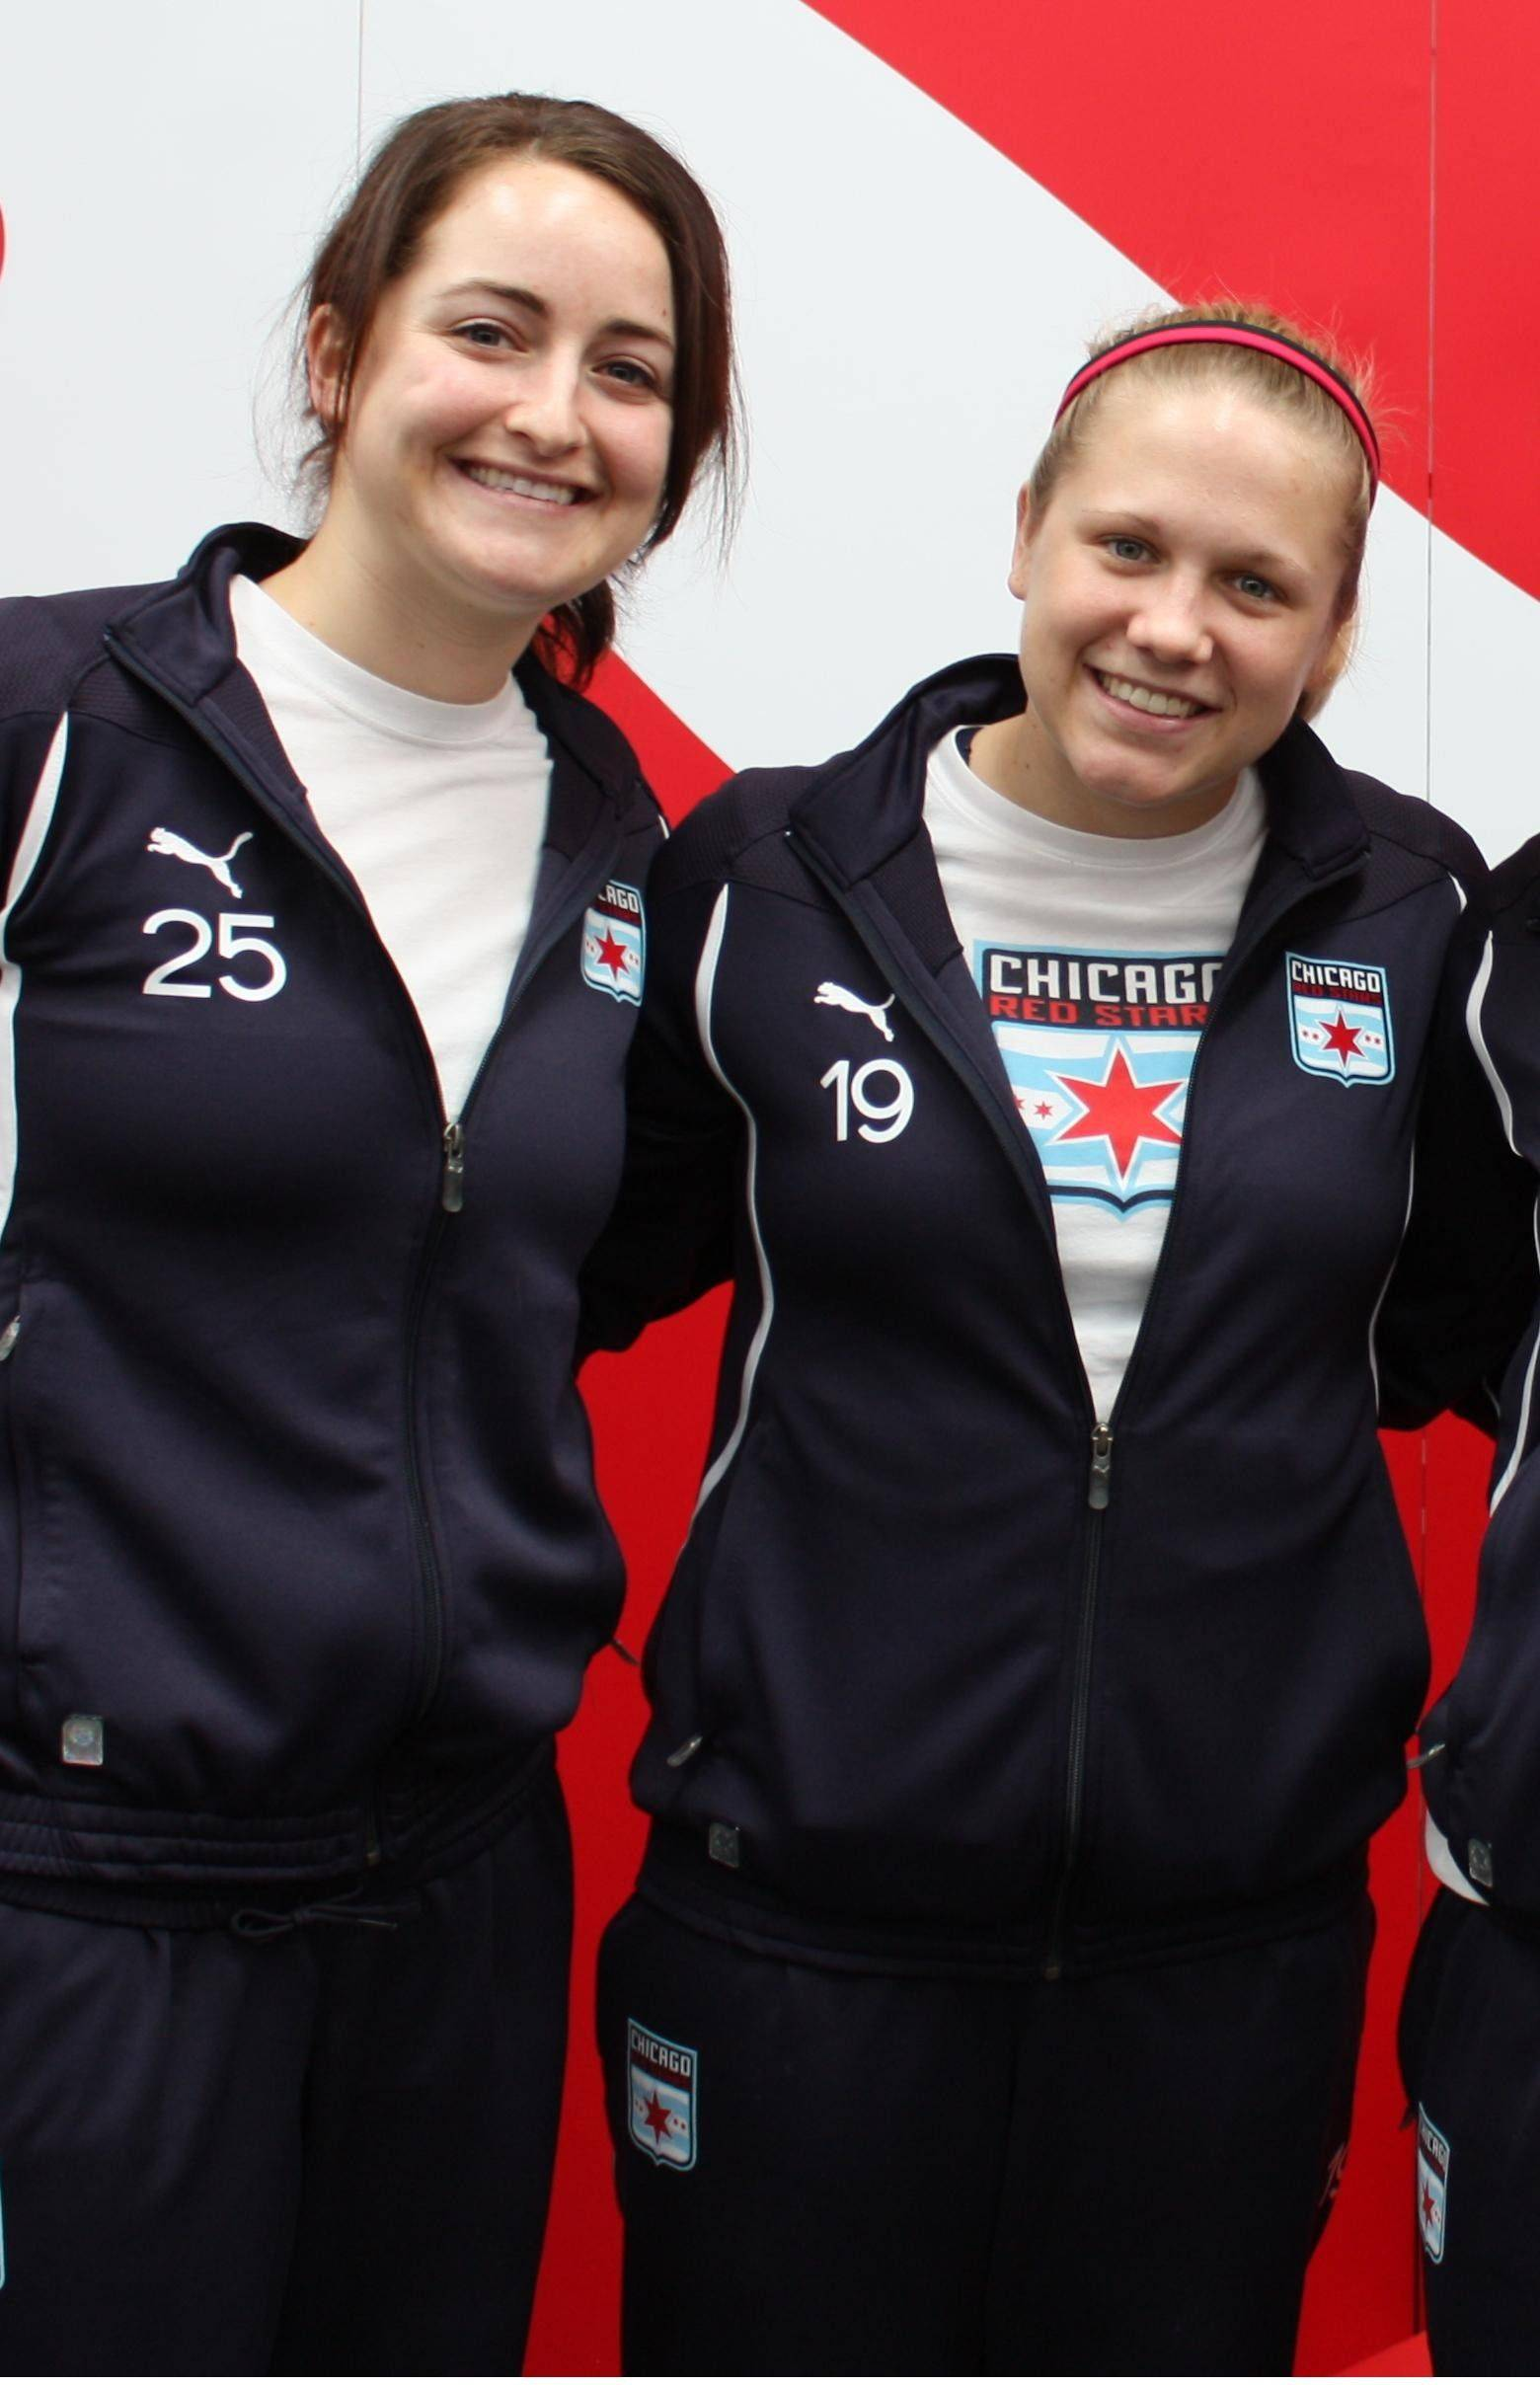 Geneva soccer star Jackie Santacaterina, left, and Michele Weissenhofer of Naperville will be playing this summer for the Chicago Red Stars in a semipro league with 5 home games slated at Benedictine University in Lisle.